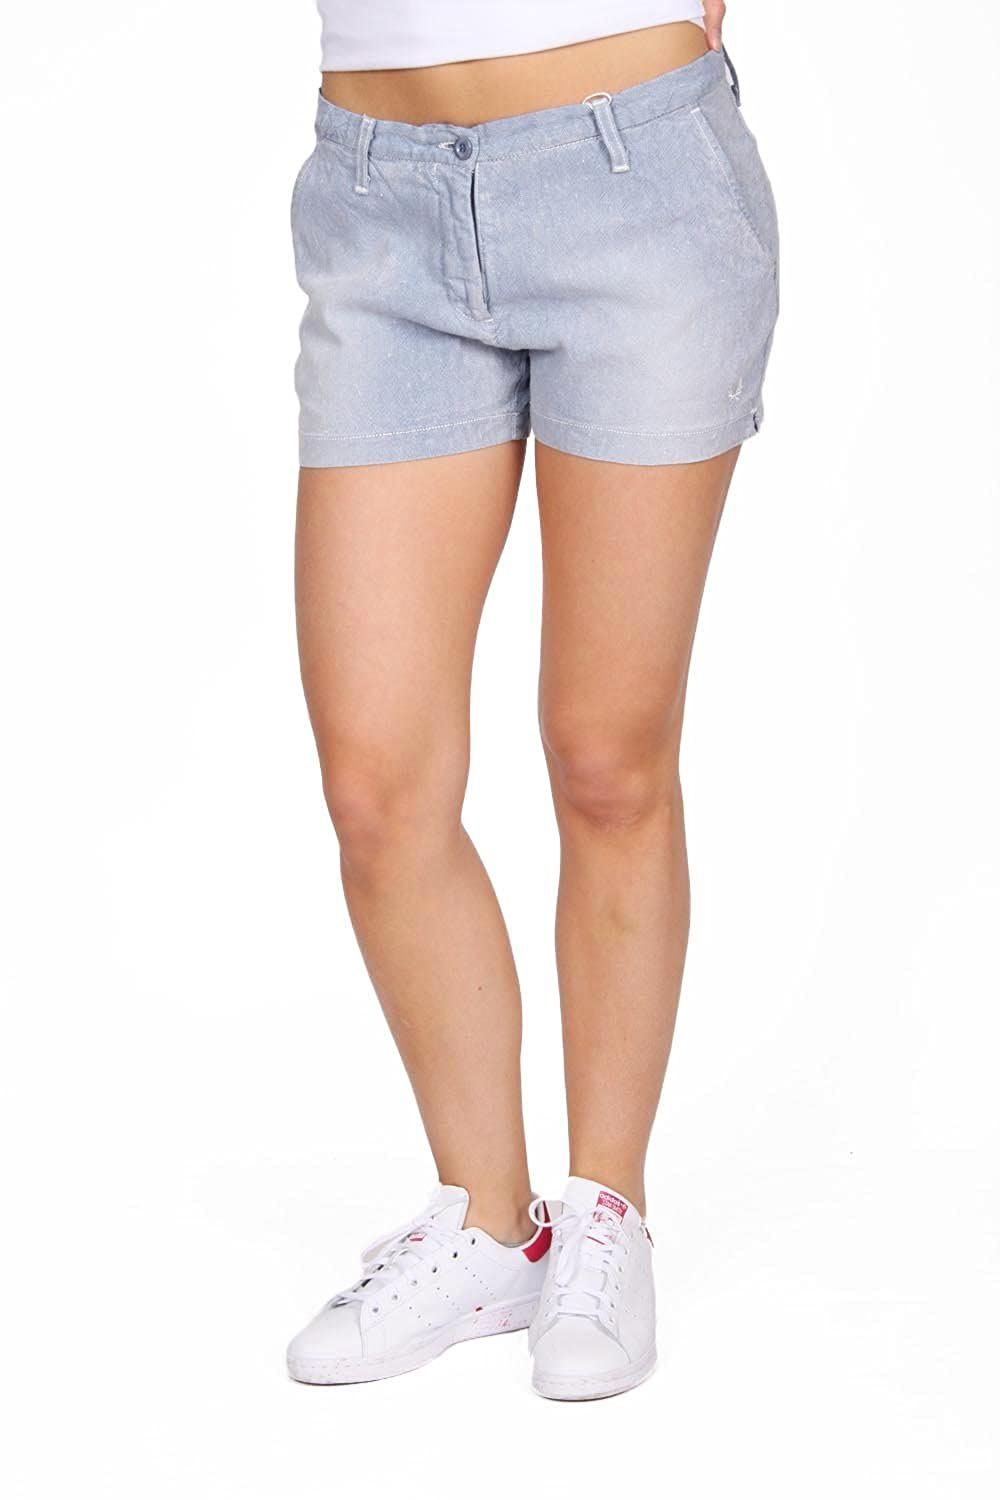 Fred Perry Damen Shorts 31512073 0031